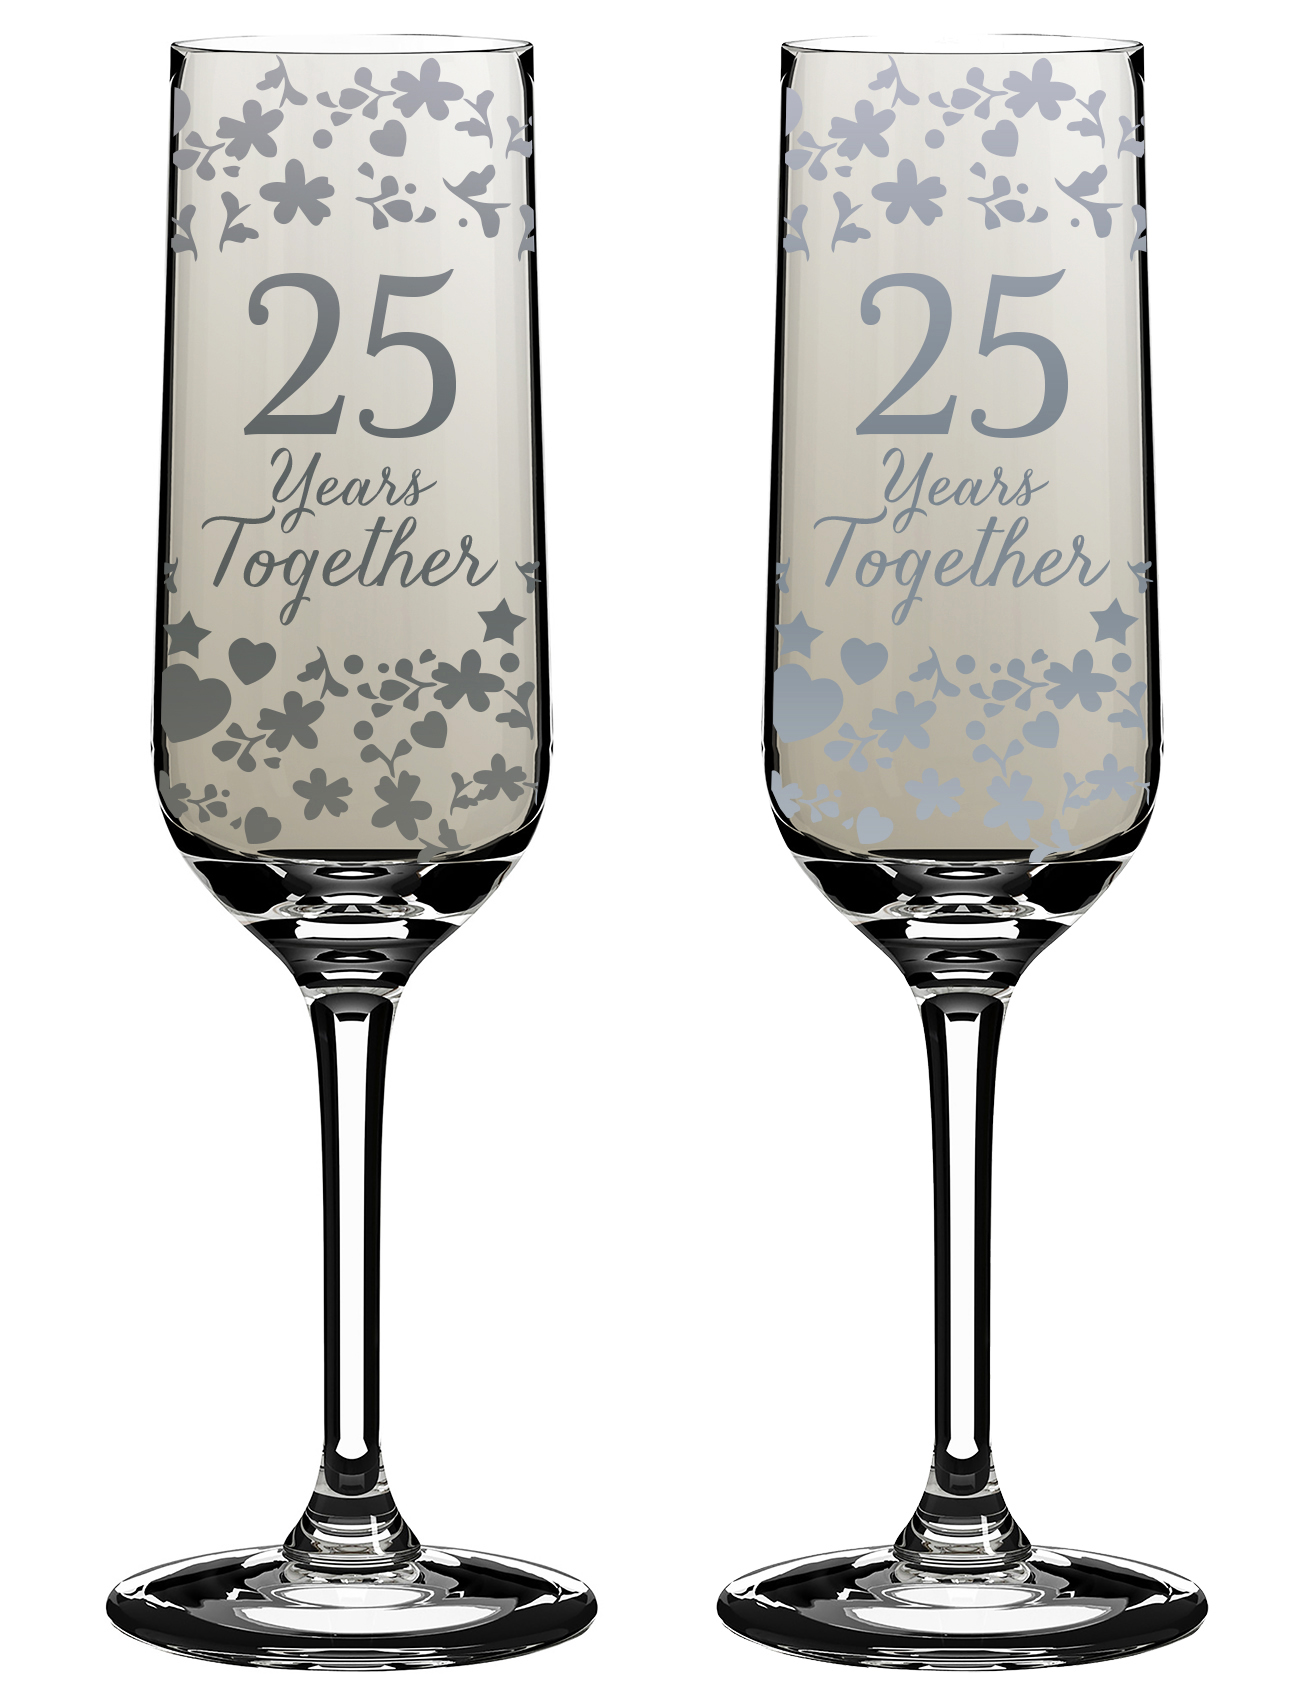 25 Years Together 25th Anniversary Champagne Flutes In Gift Box ...